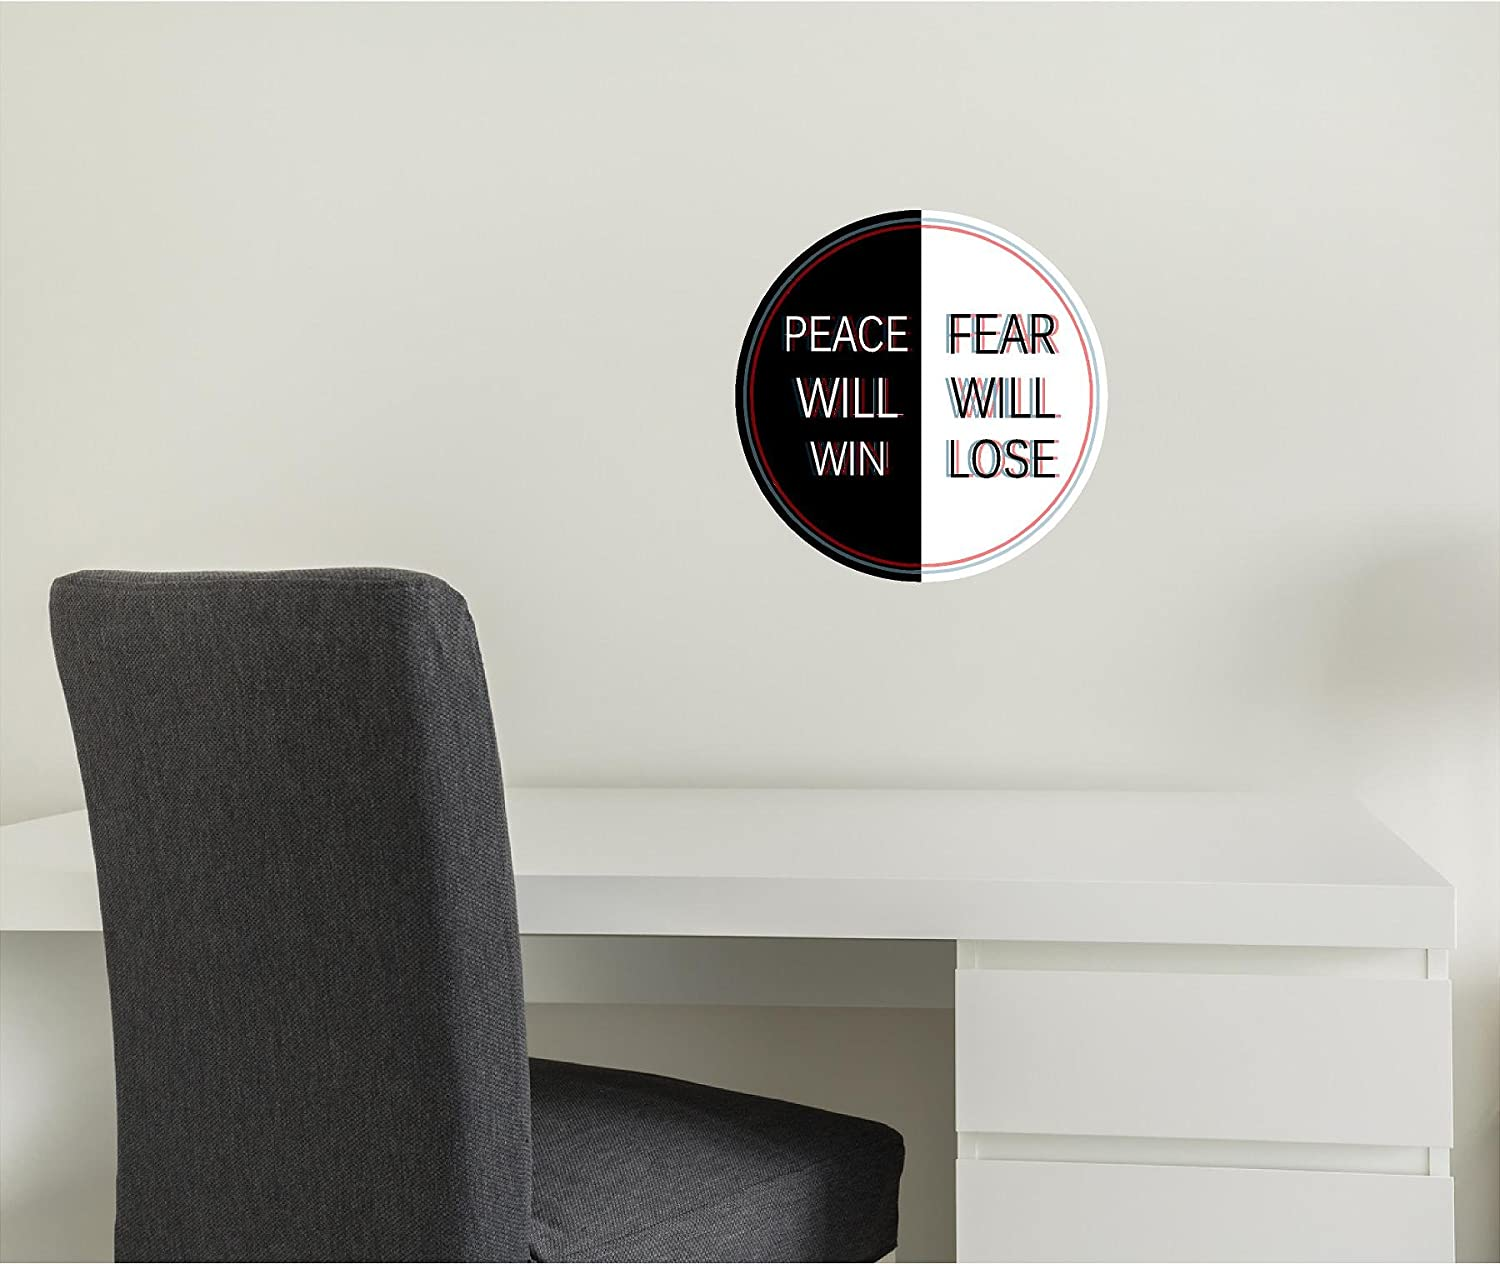 """12"""" Twenty One Pilots Quote #2 Poster Decal Sticker Graphic Mural Removable Reusable TOP Song Lyrics Photo for Home, Office & Bedroom Decor"""